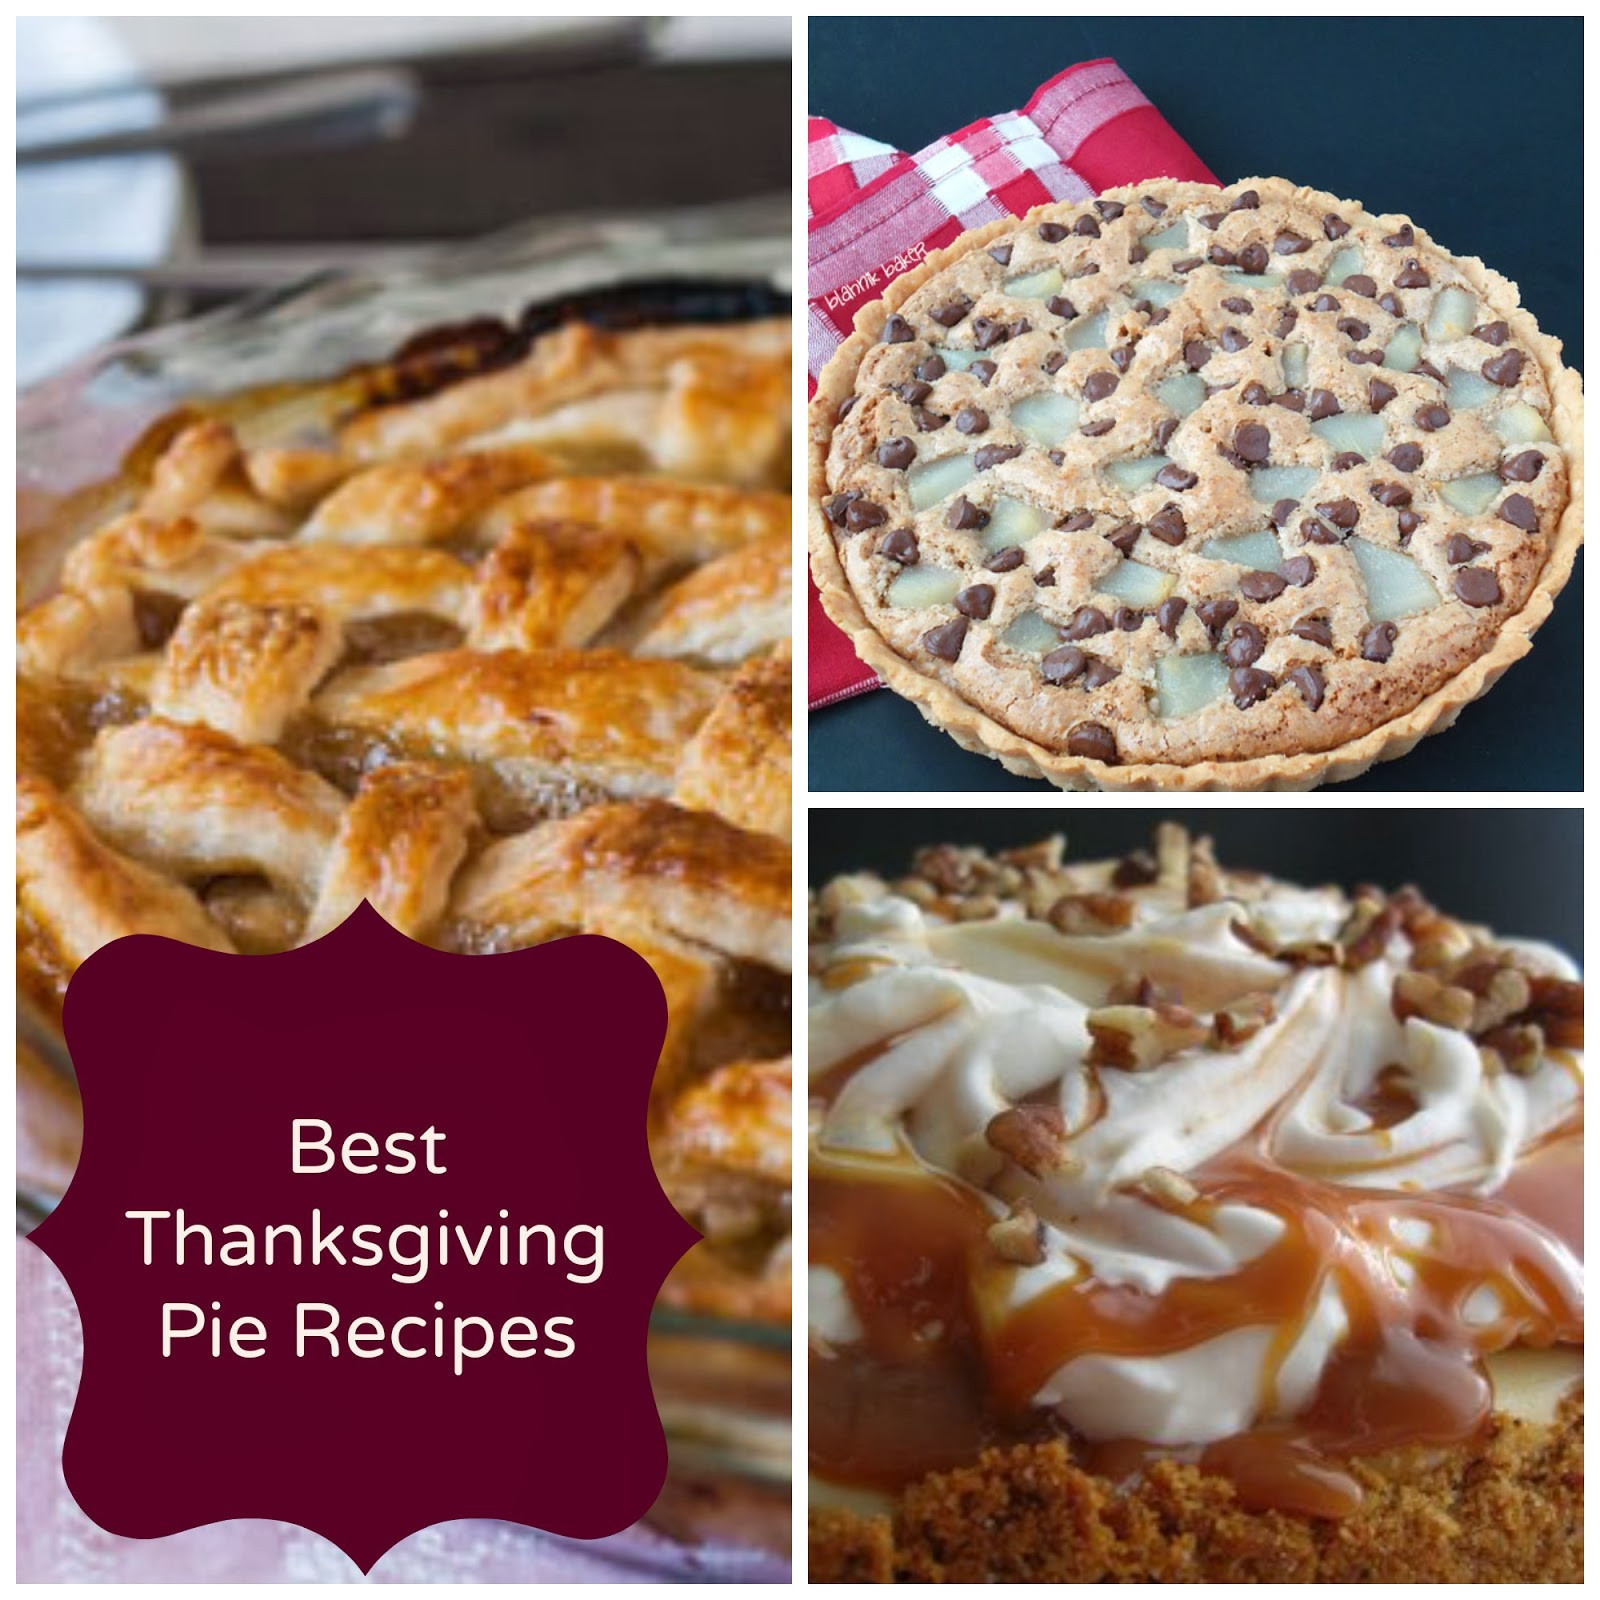 Best Pies For Thanksgiving  Decorating Pennies Best Thanksgiving Pie Recipes